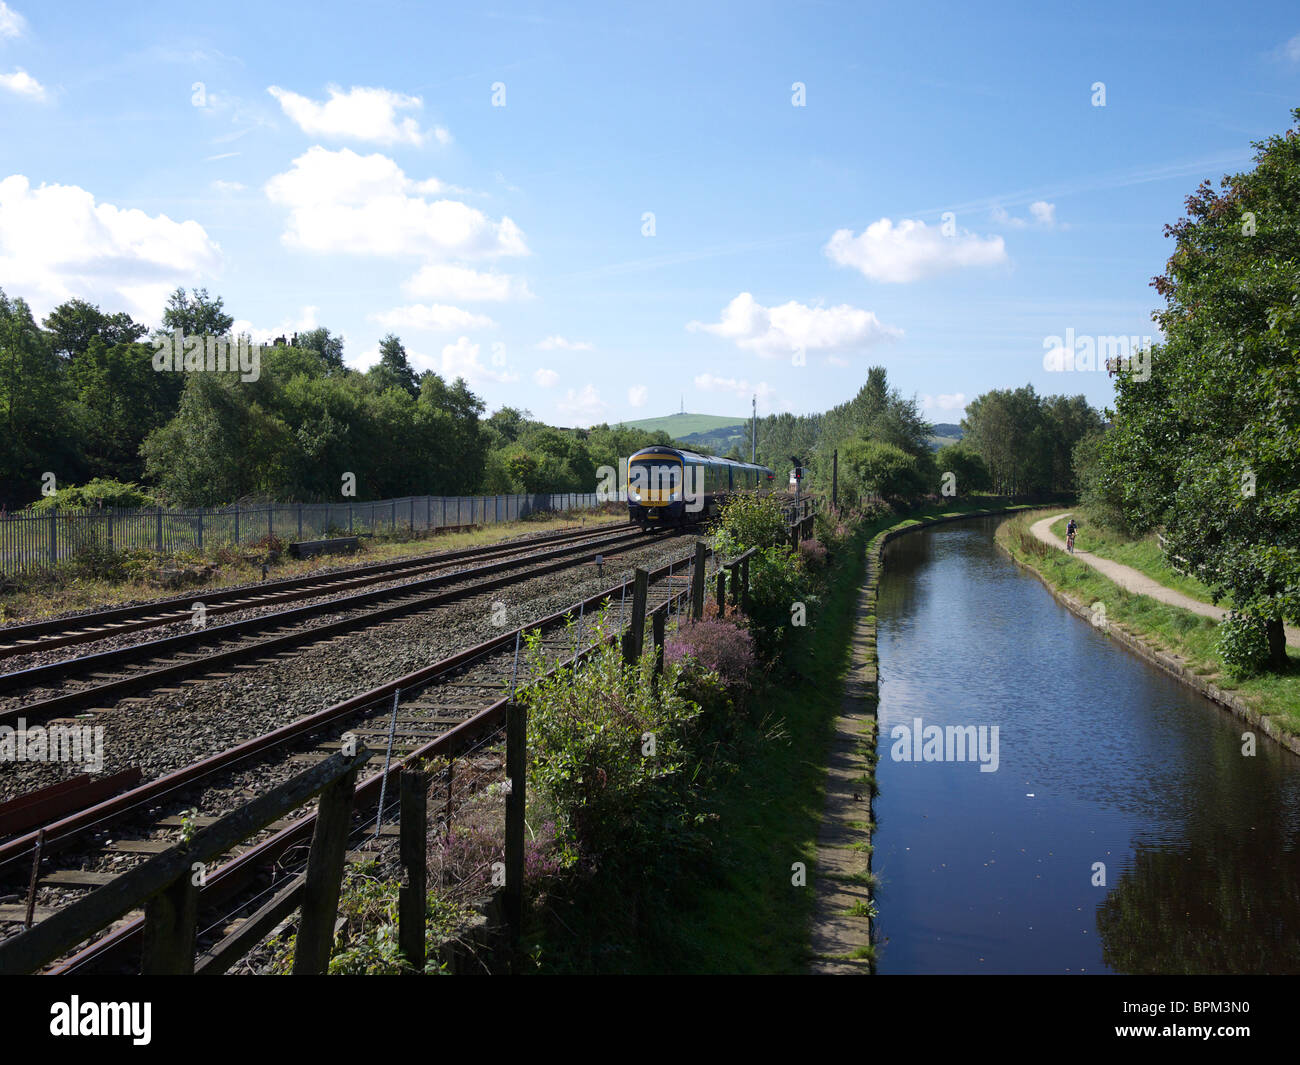 Train and the Huddersfield canal at Diggle, Oldham, England, UK. - Stock Image